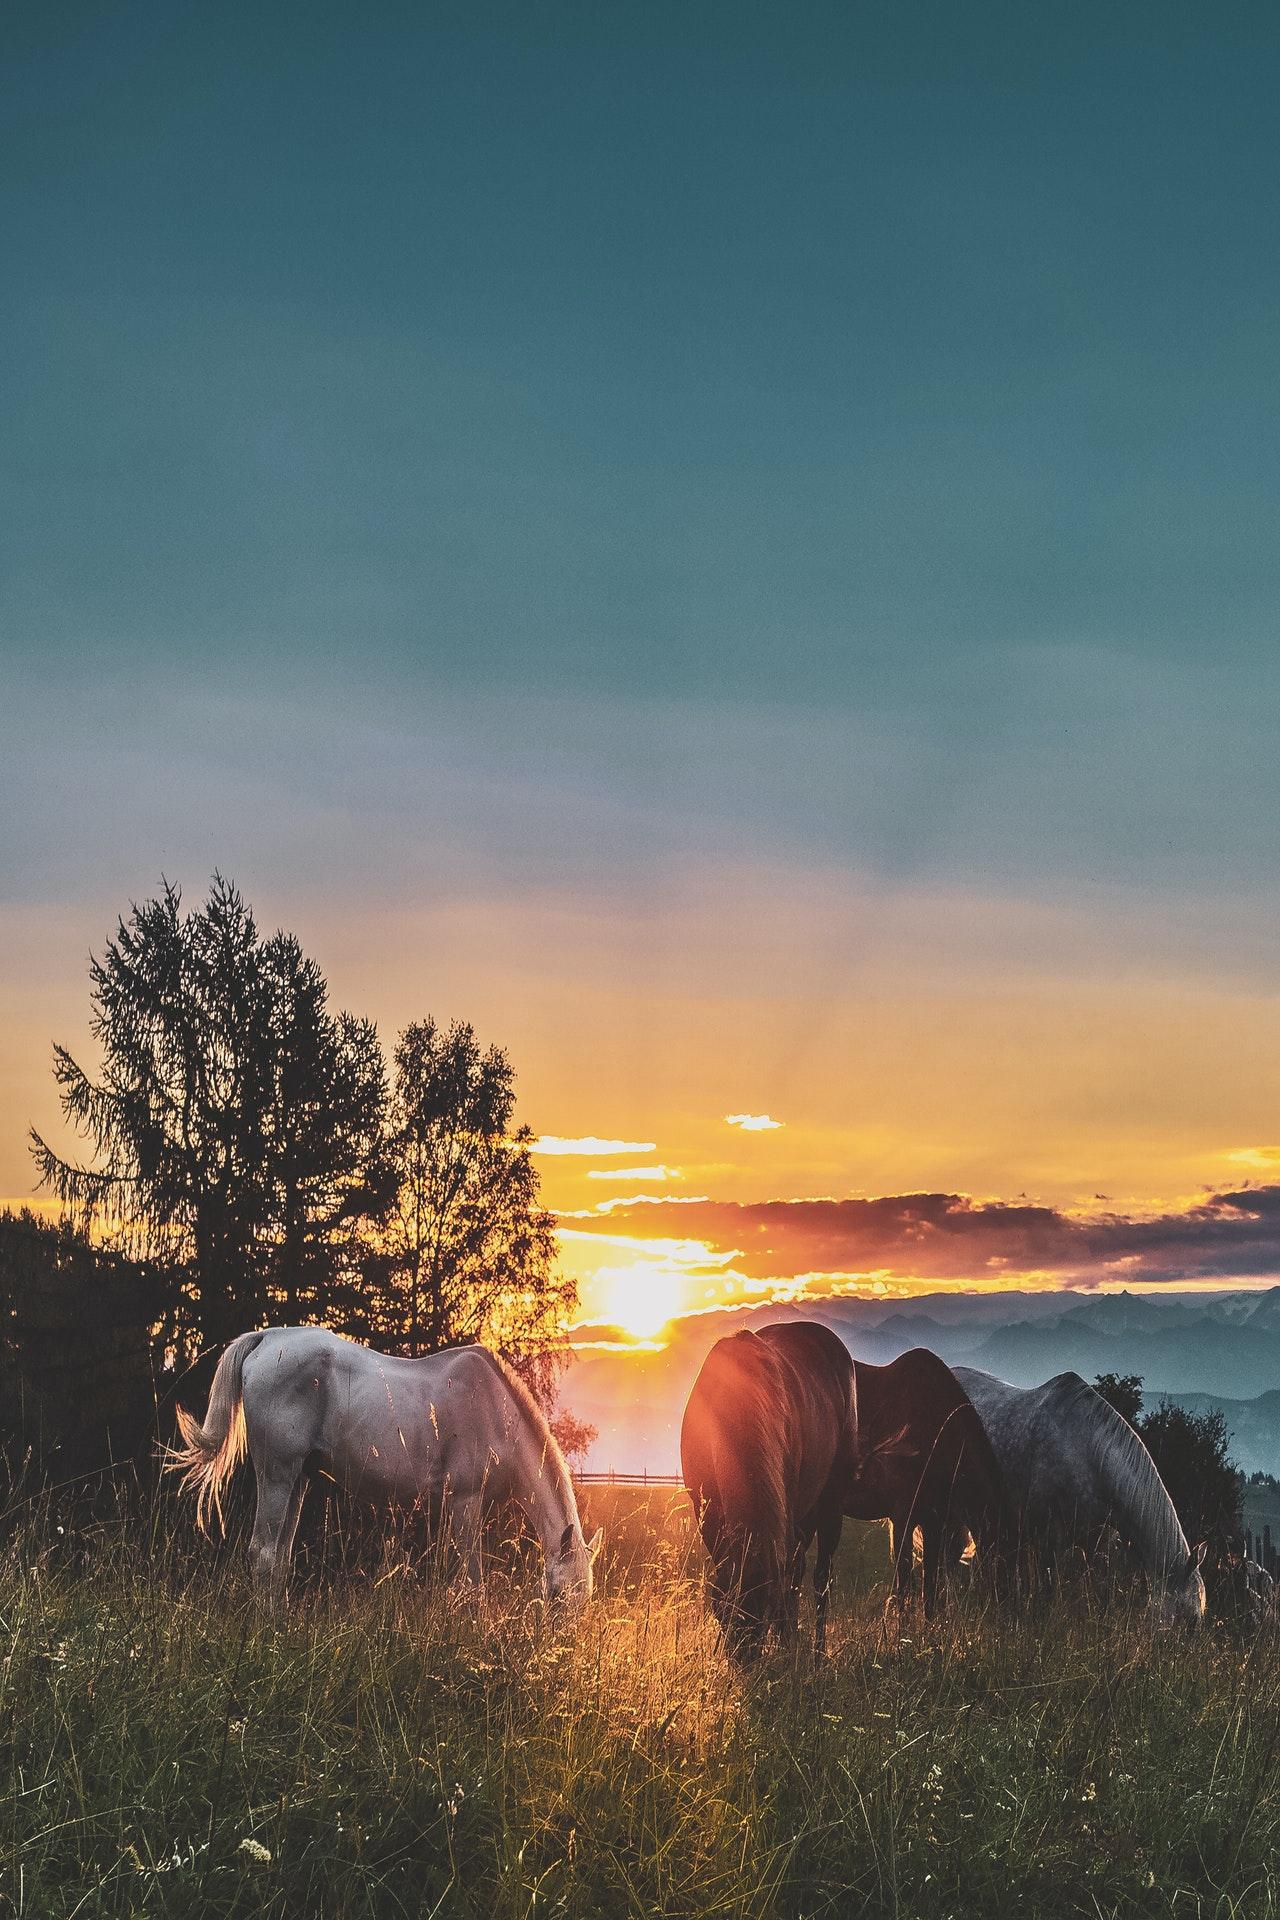 Horses on a field at the golden hour